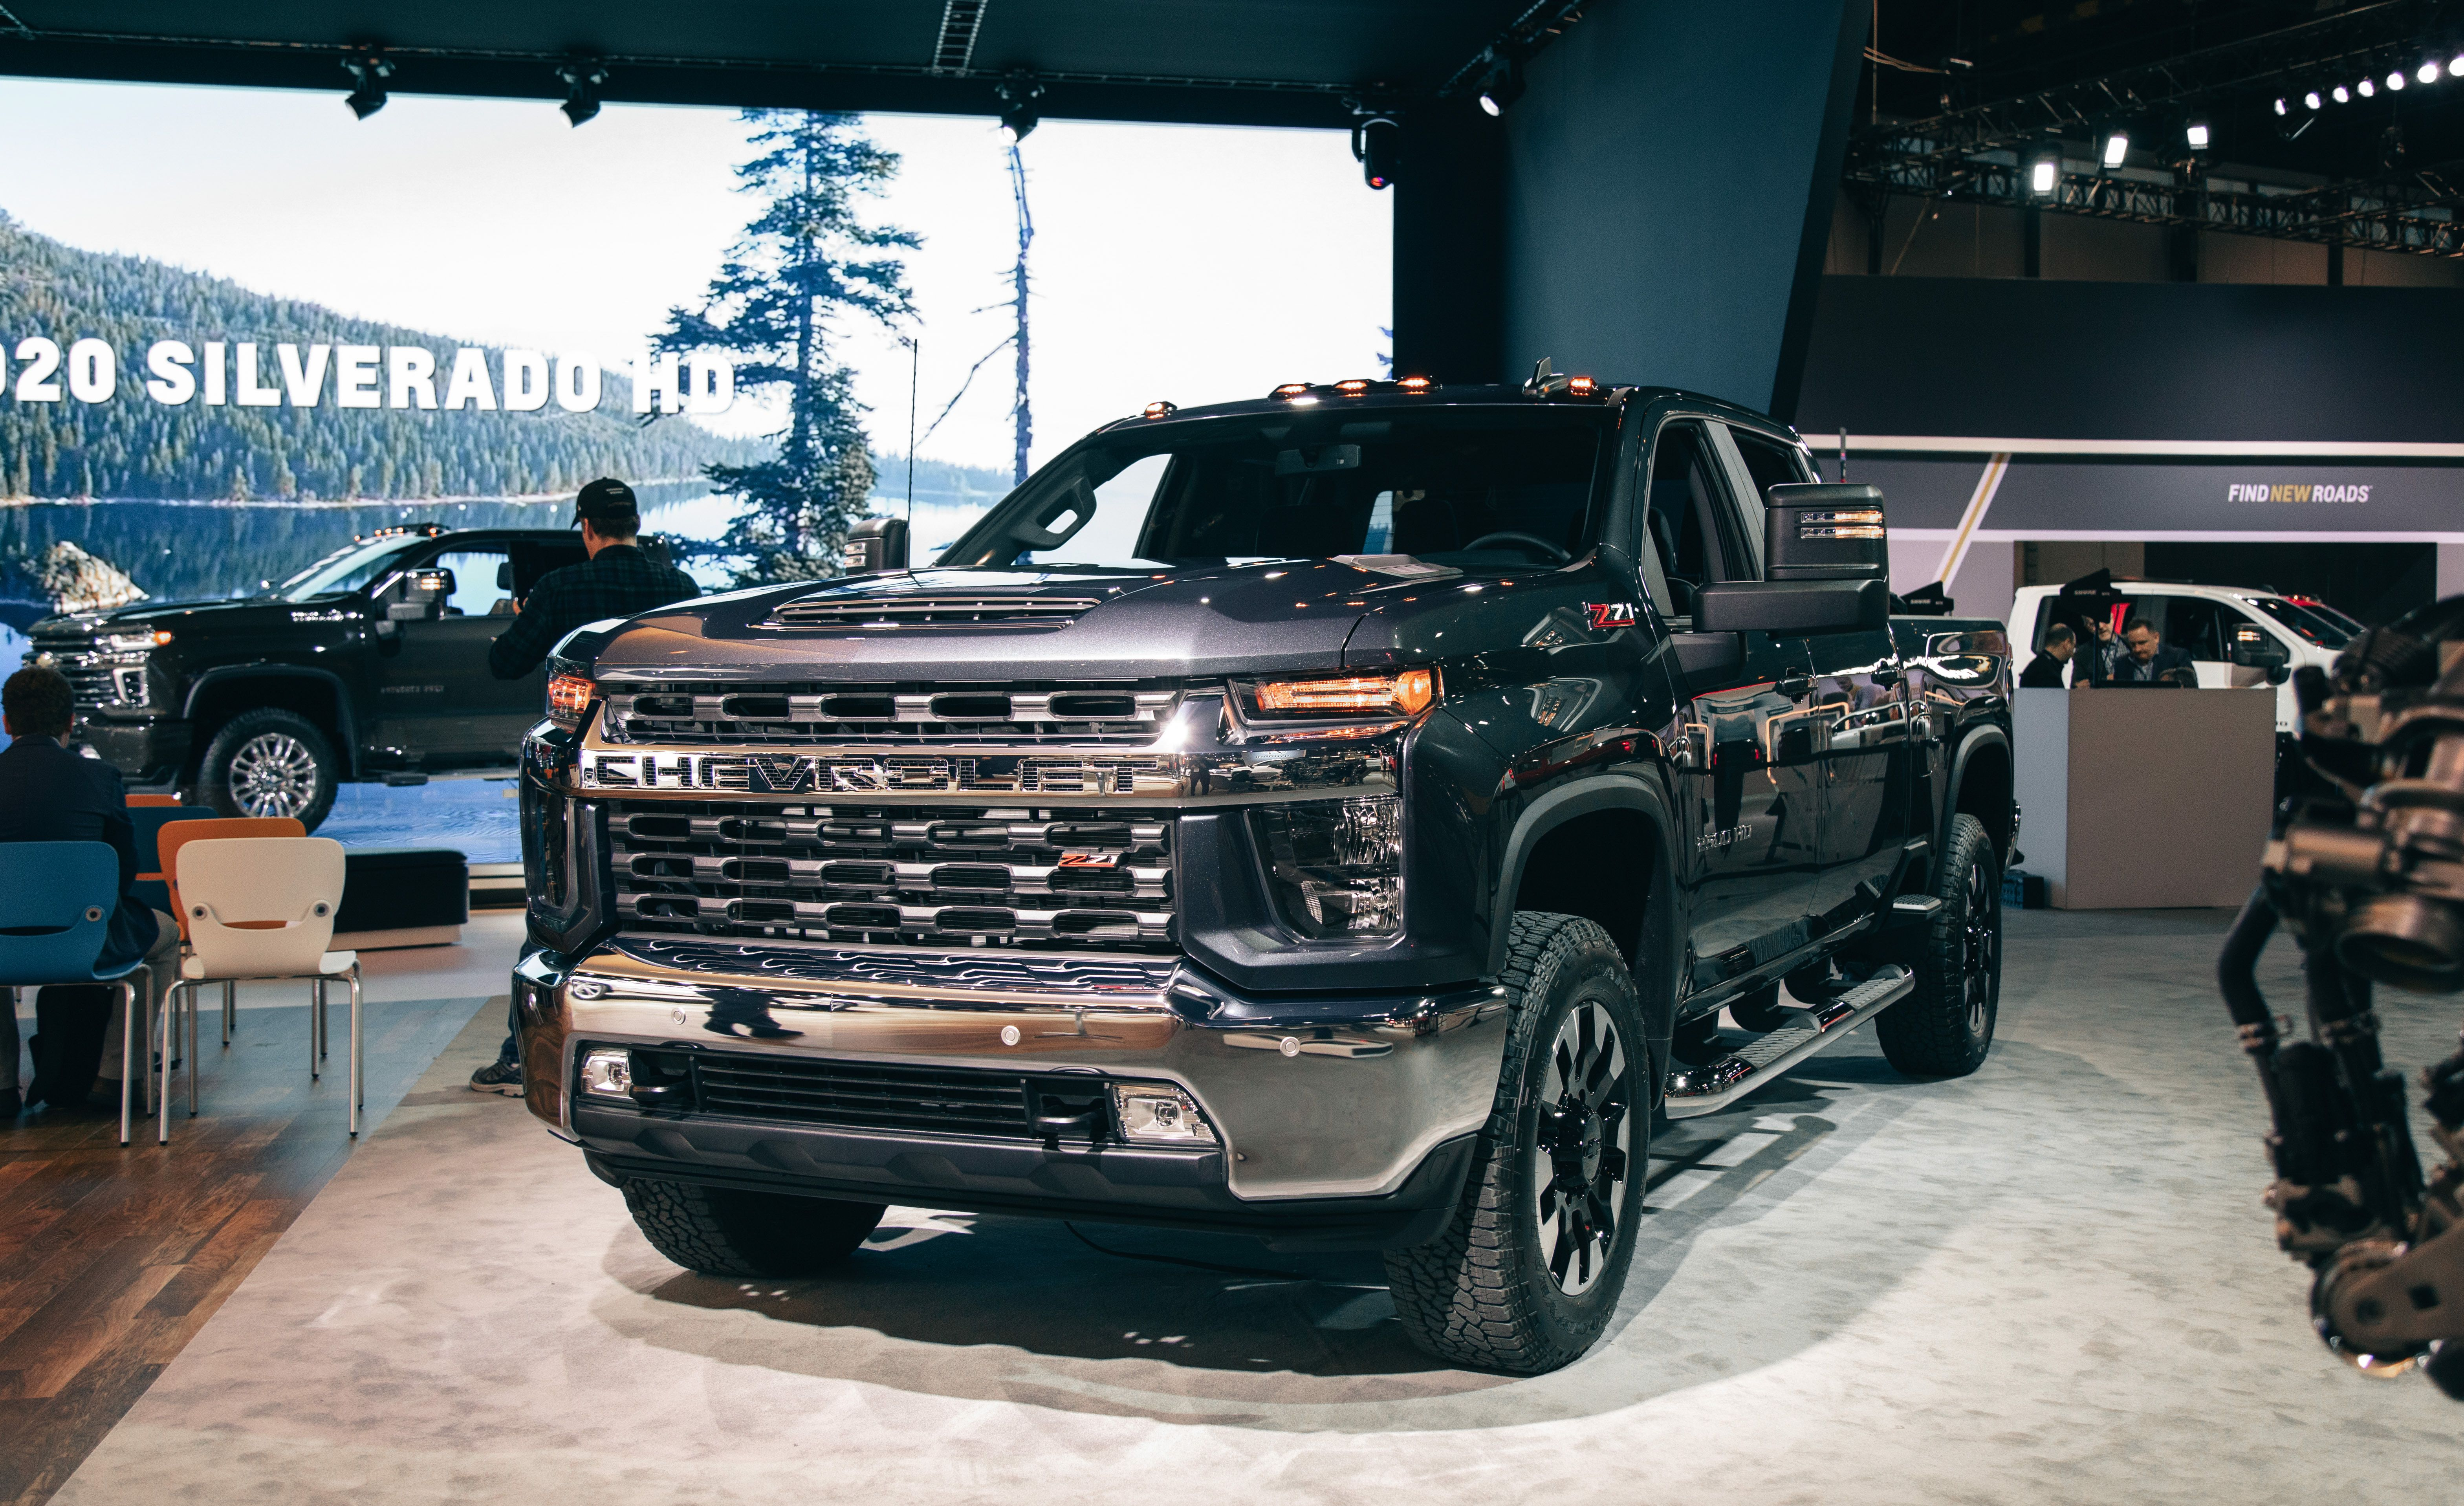 2020 Chevrolet Silverado Hd Heavy Duty Trucks Boast Big Tow Capacity